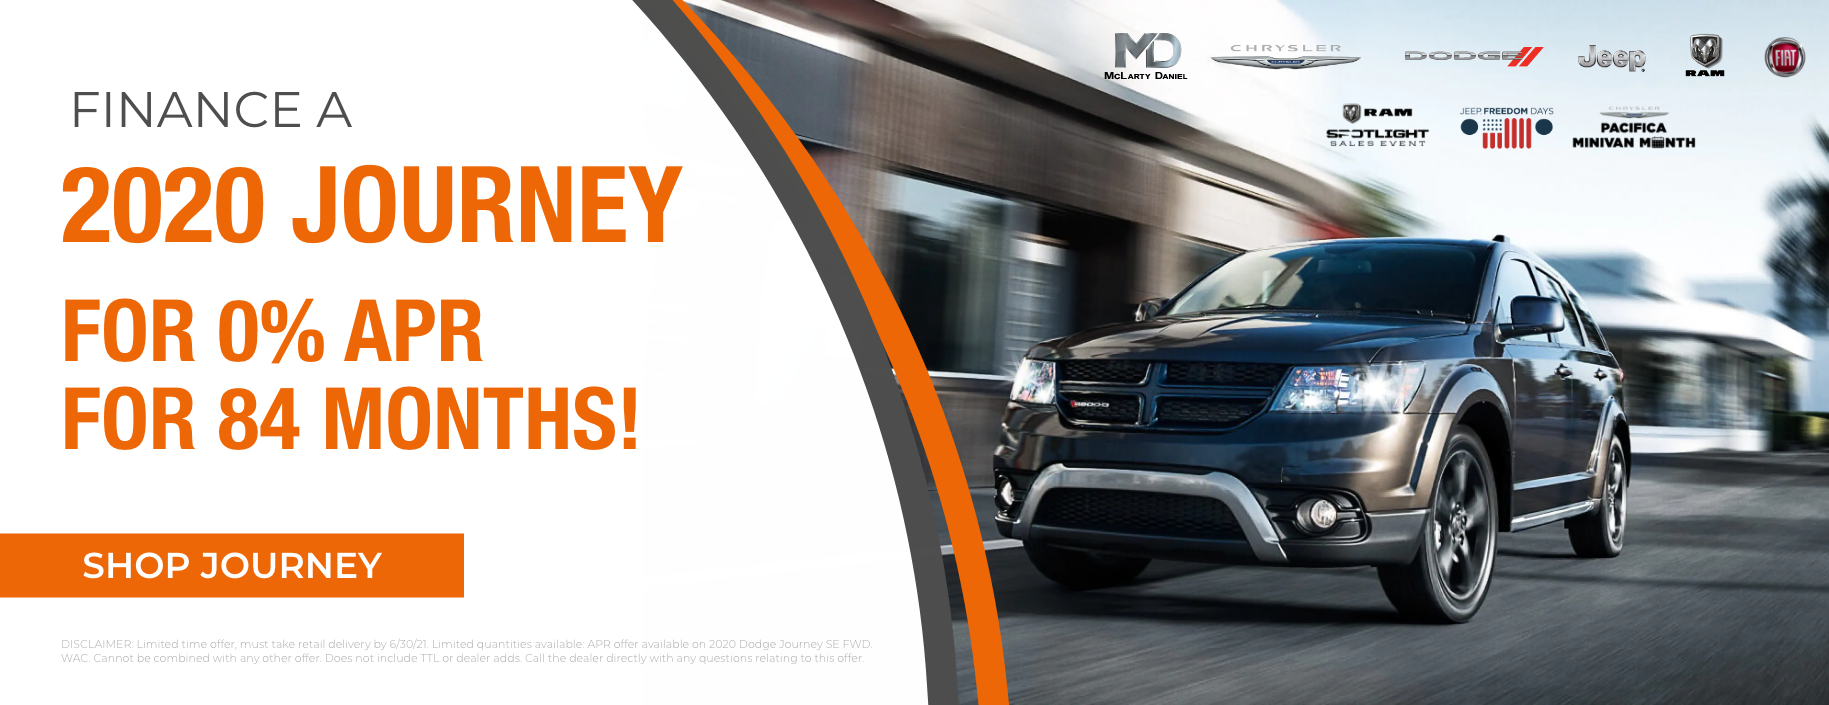 Finance a 2020 Journey for 0% APR for 84 months!